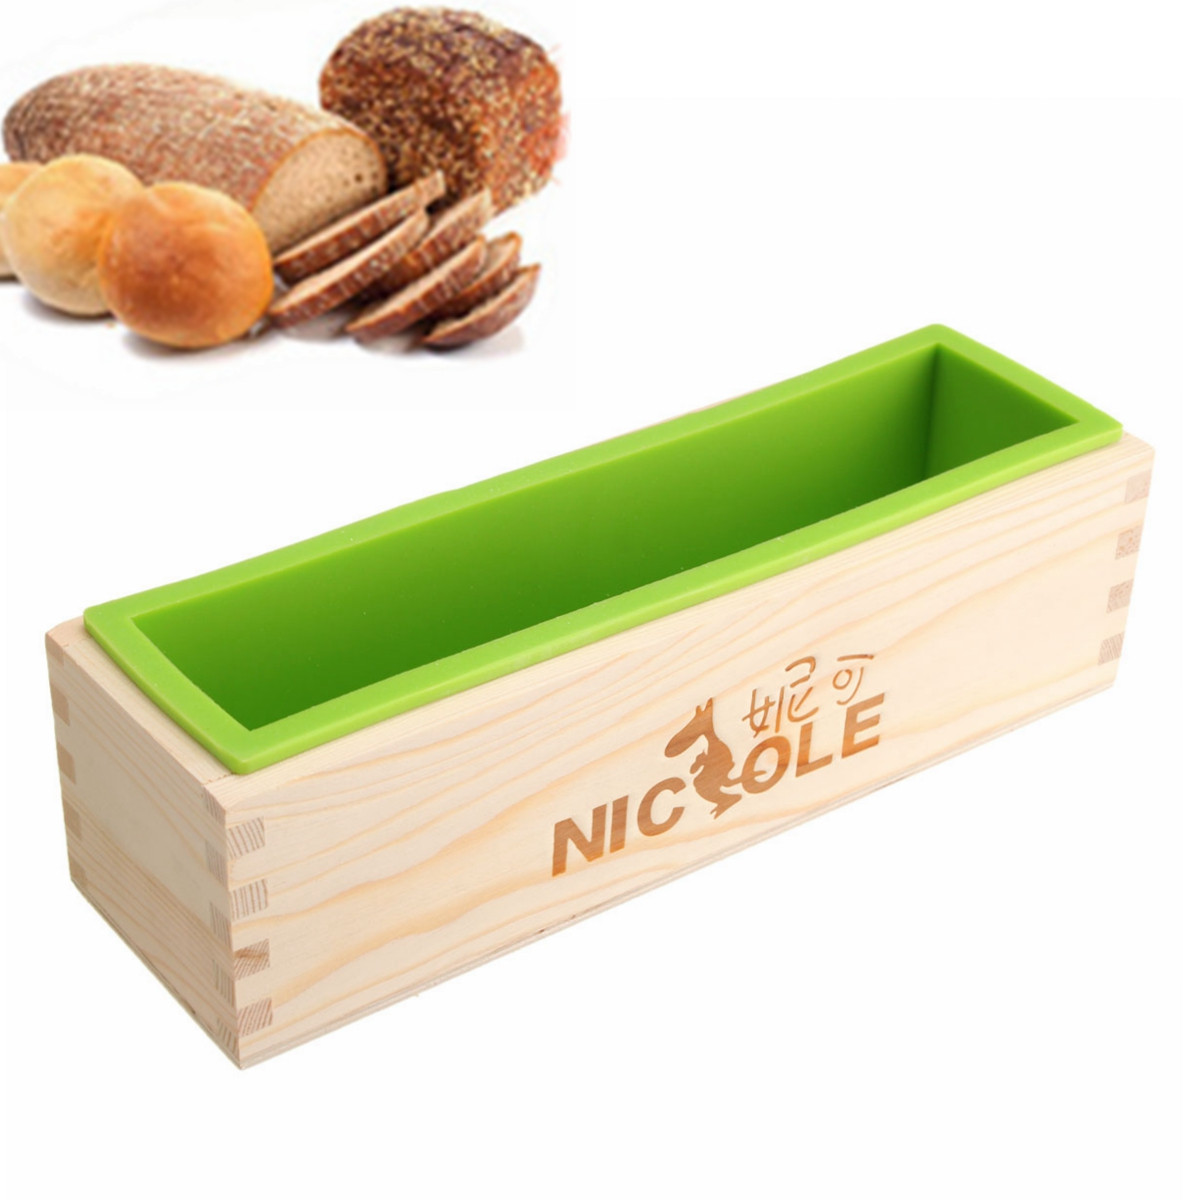 Rectangle Silicone + Wood Soap Mold Wooden Box DIY Tools Toast Loaf Baking Cake Molds by